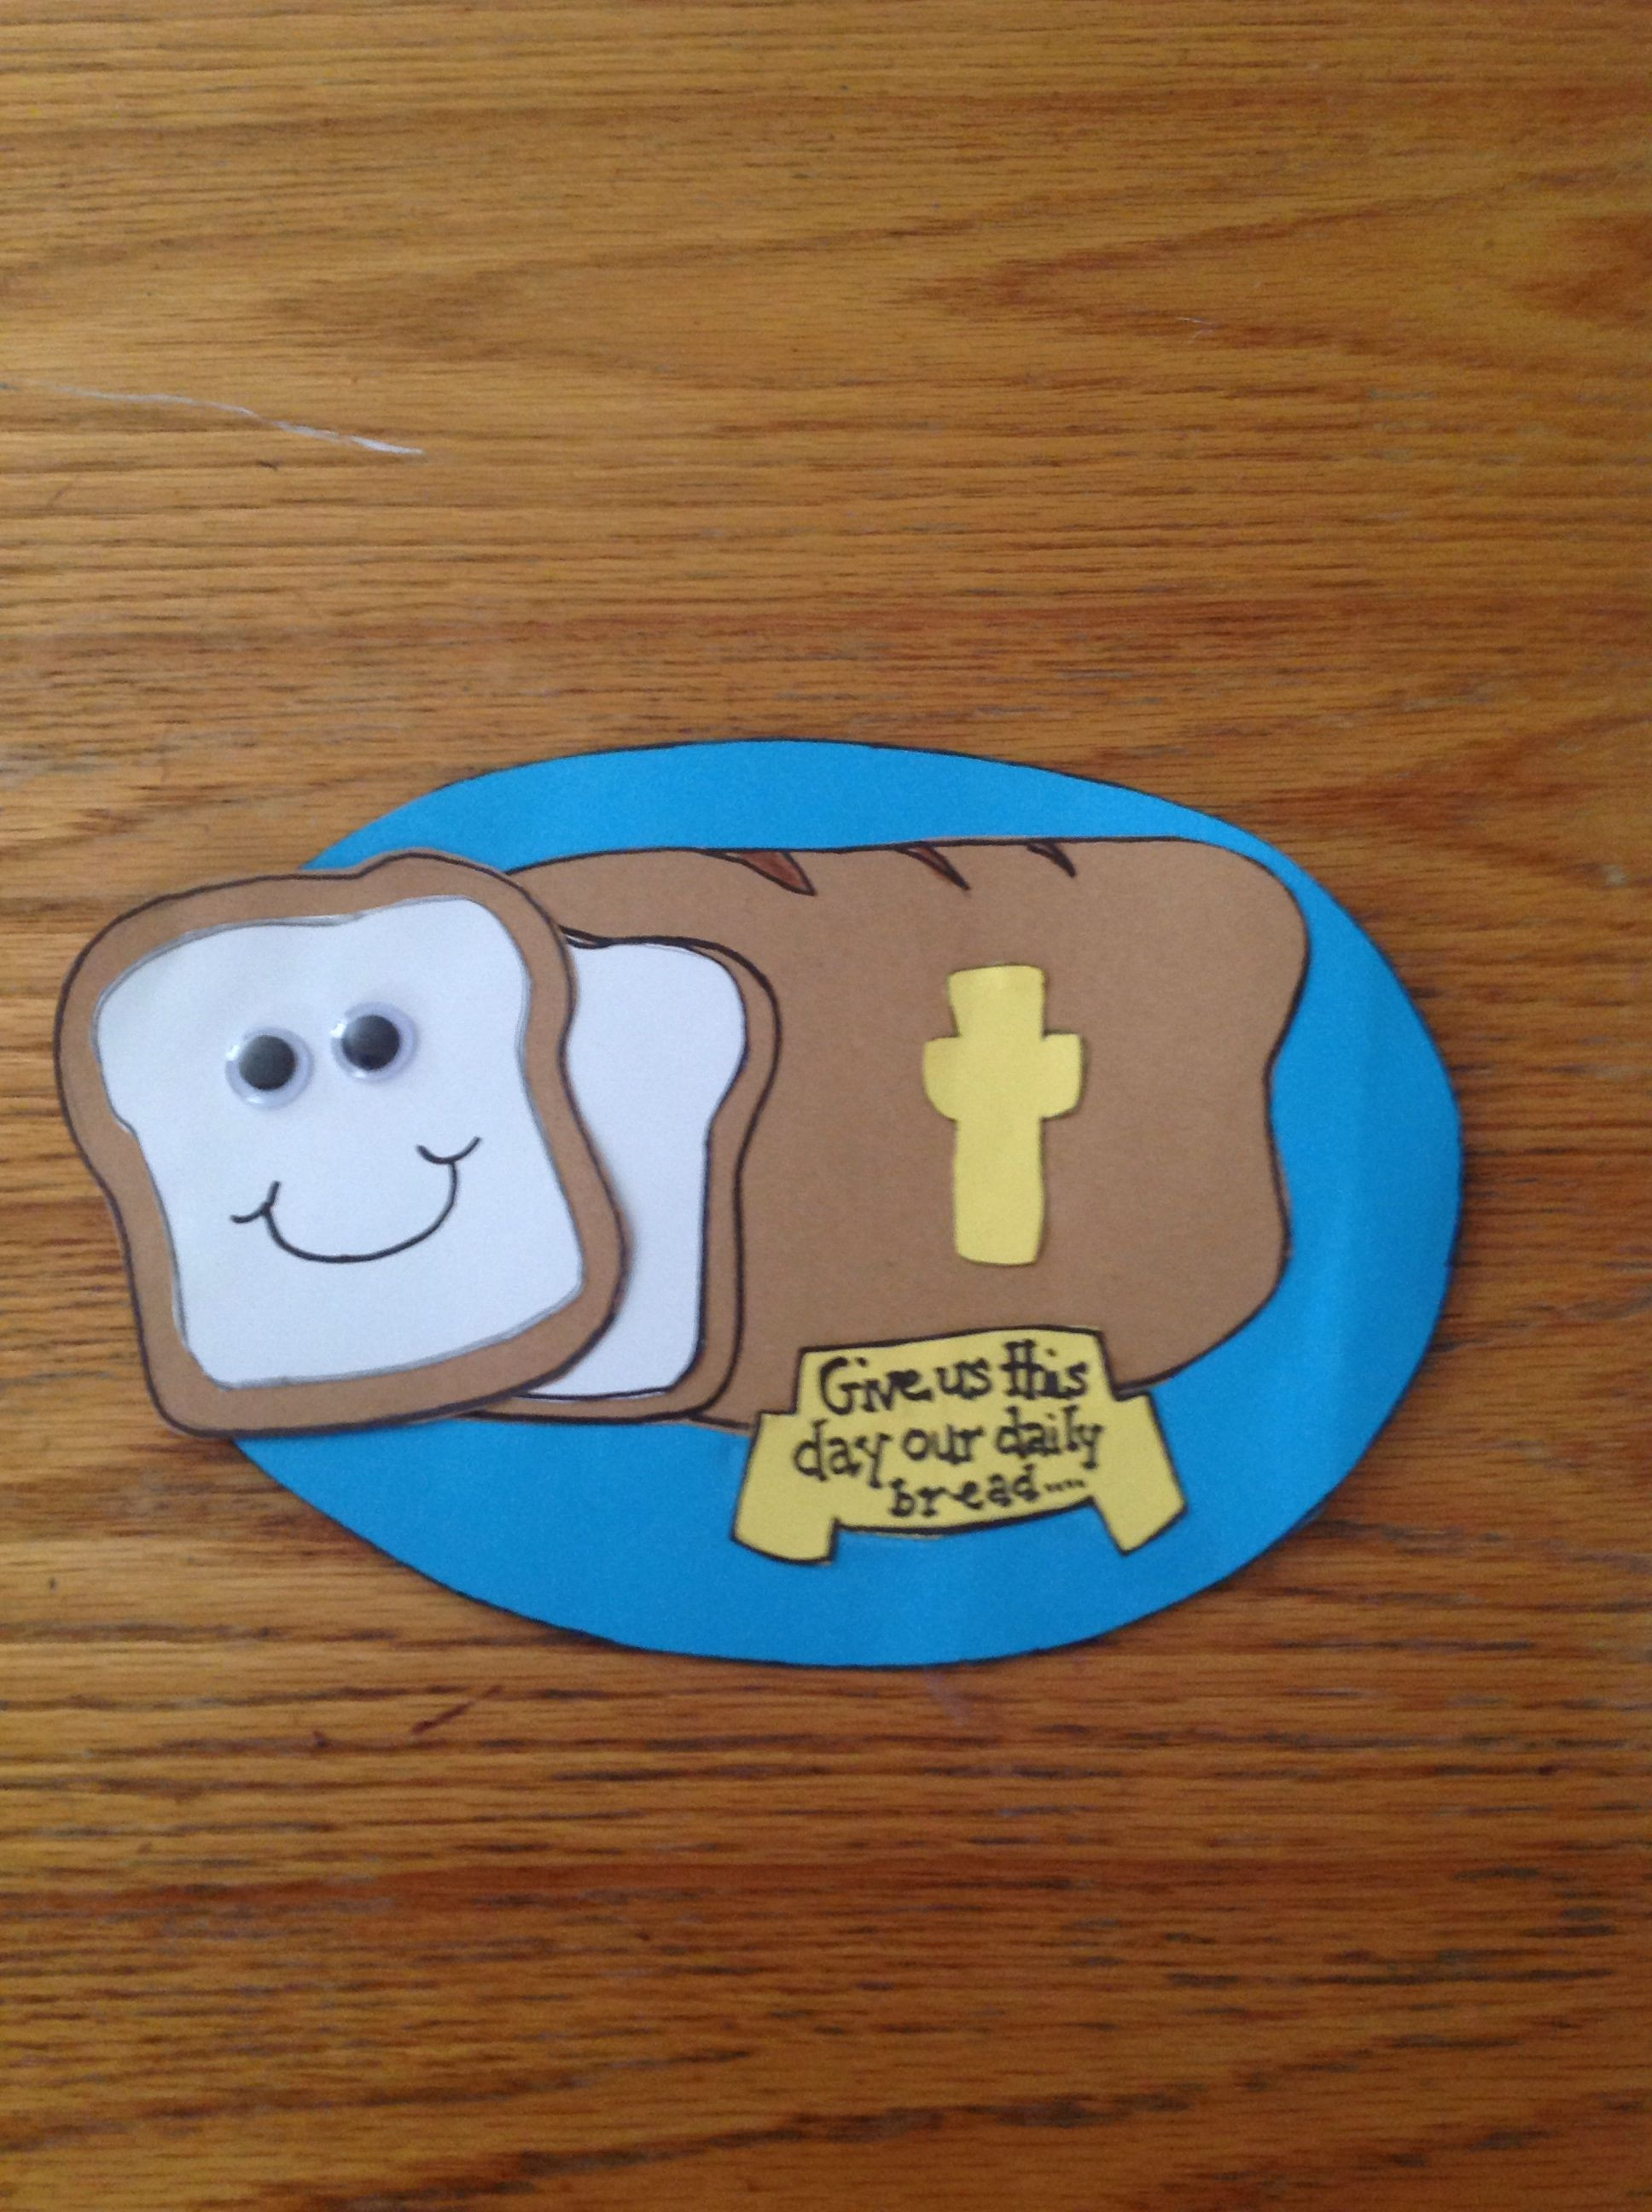 Best ideas about Bible Crafts For Preschoolers . Save or Pin Our Daily Bread Bible Craft for Kids Now.